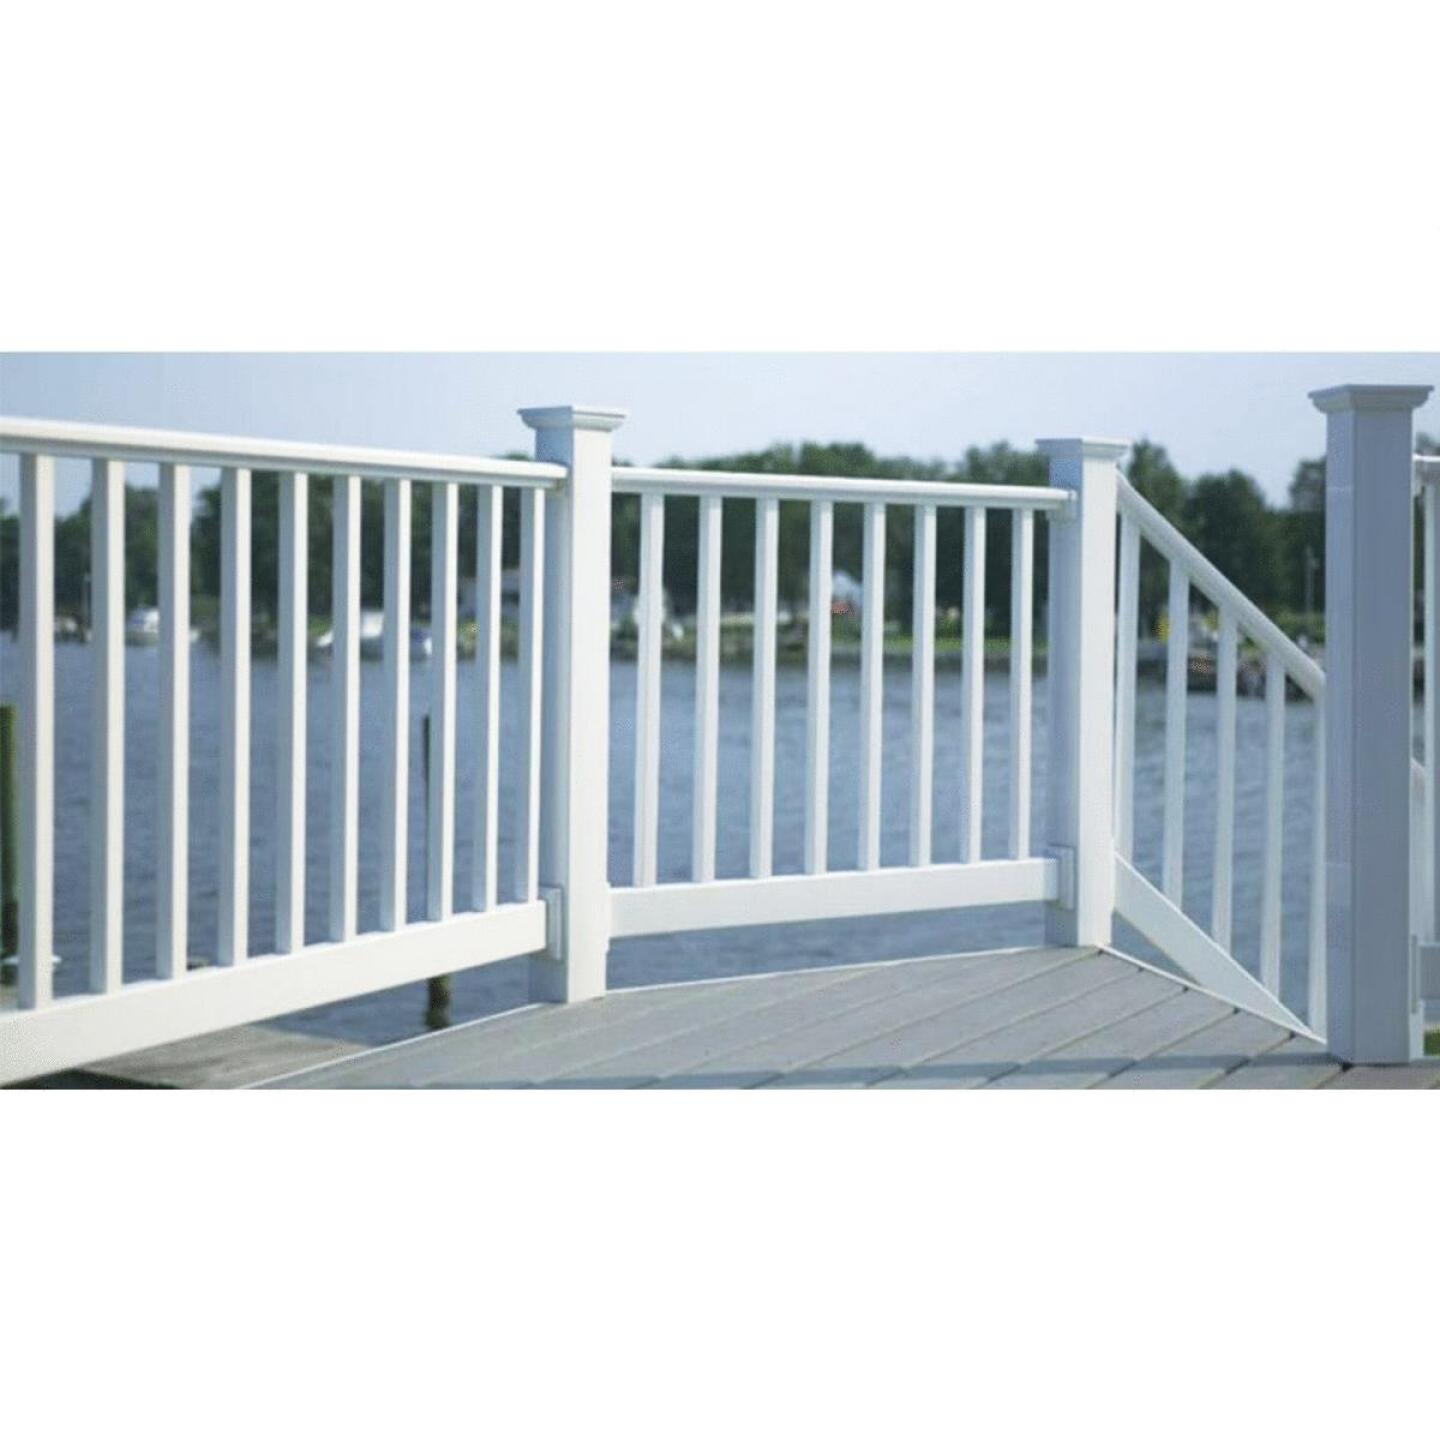 RDI 36 In. H. x 6 Ft. L. Vinyl Original Railing Image 2